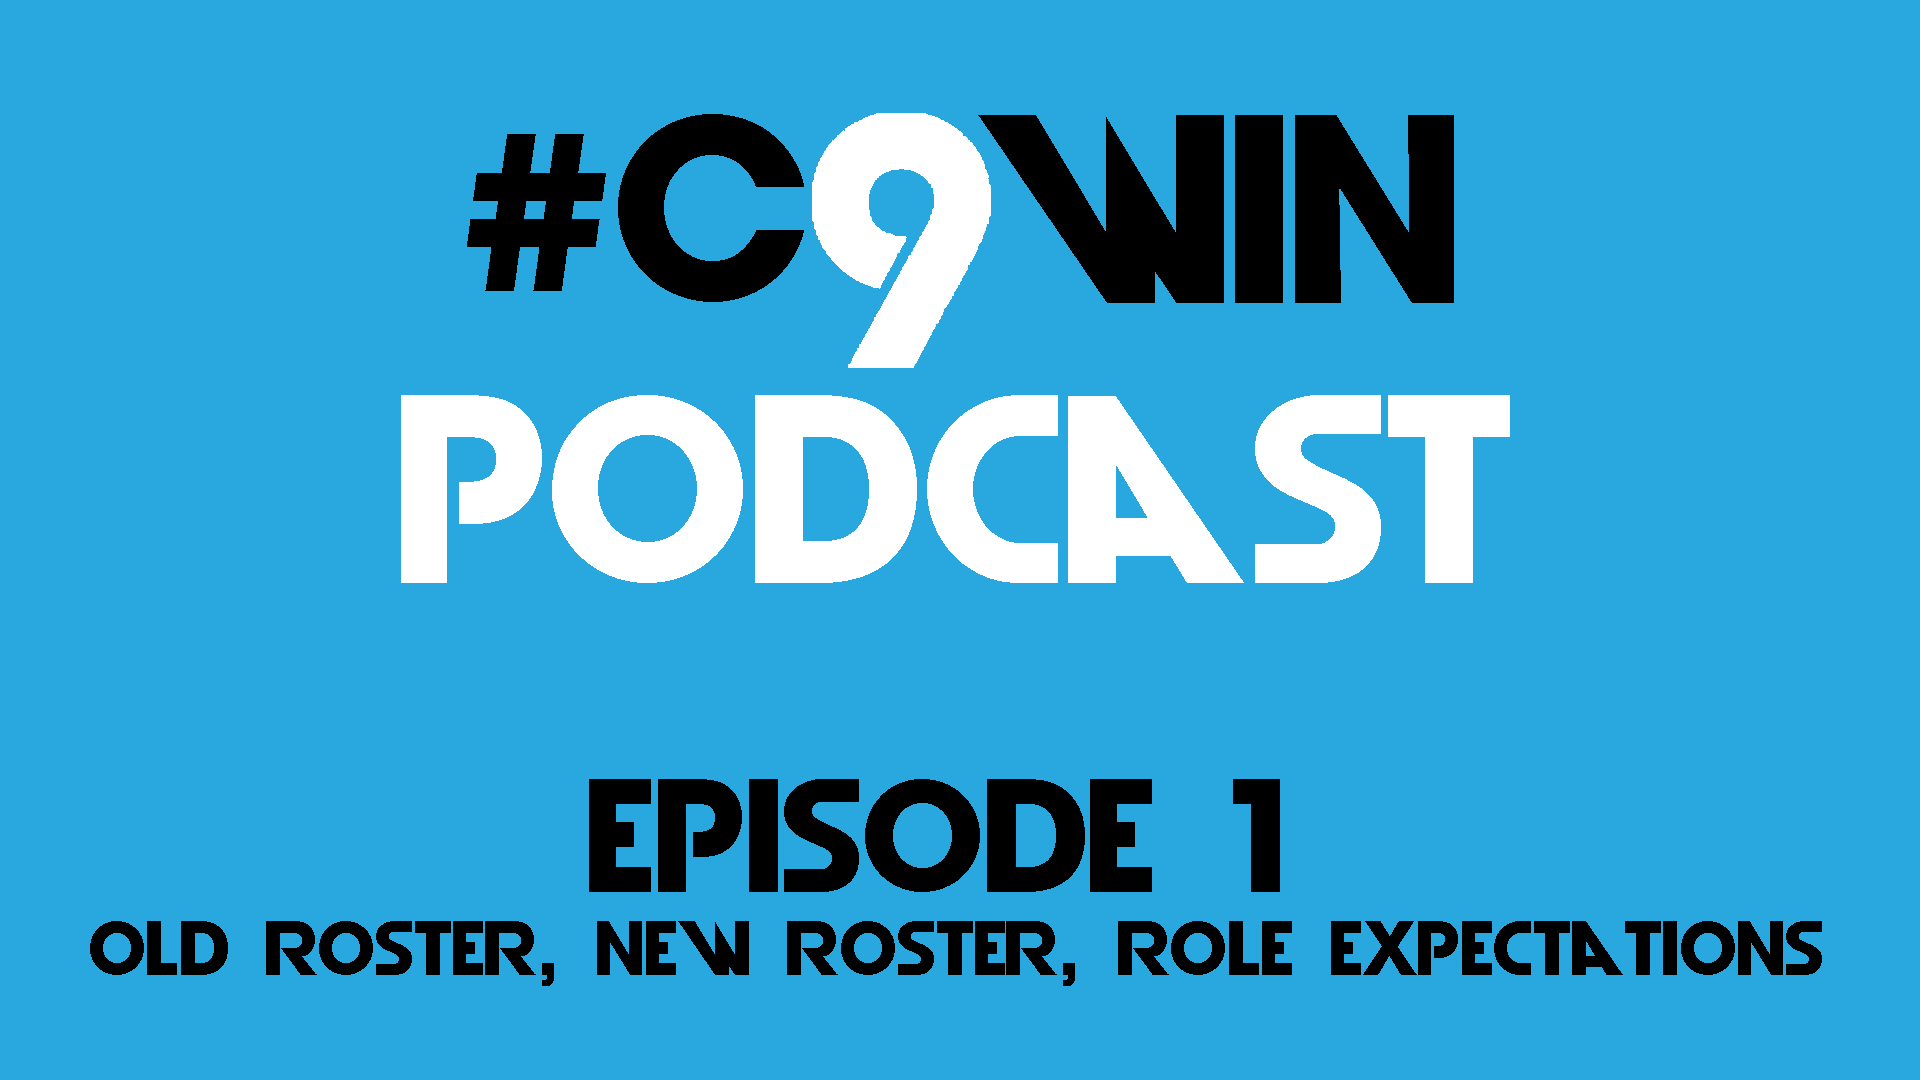 First episode of the C9WIN Podcast